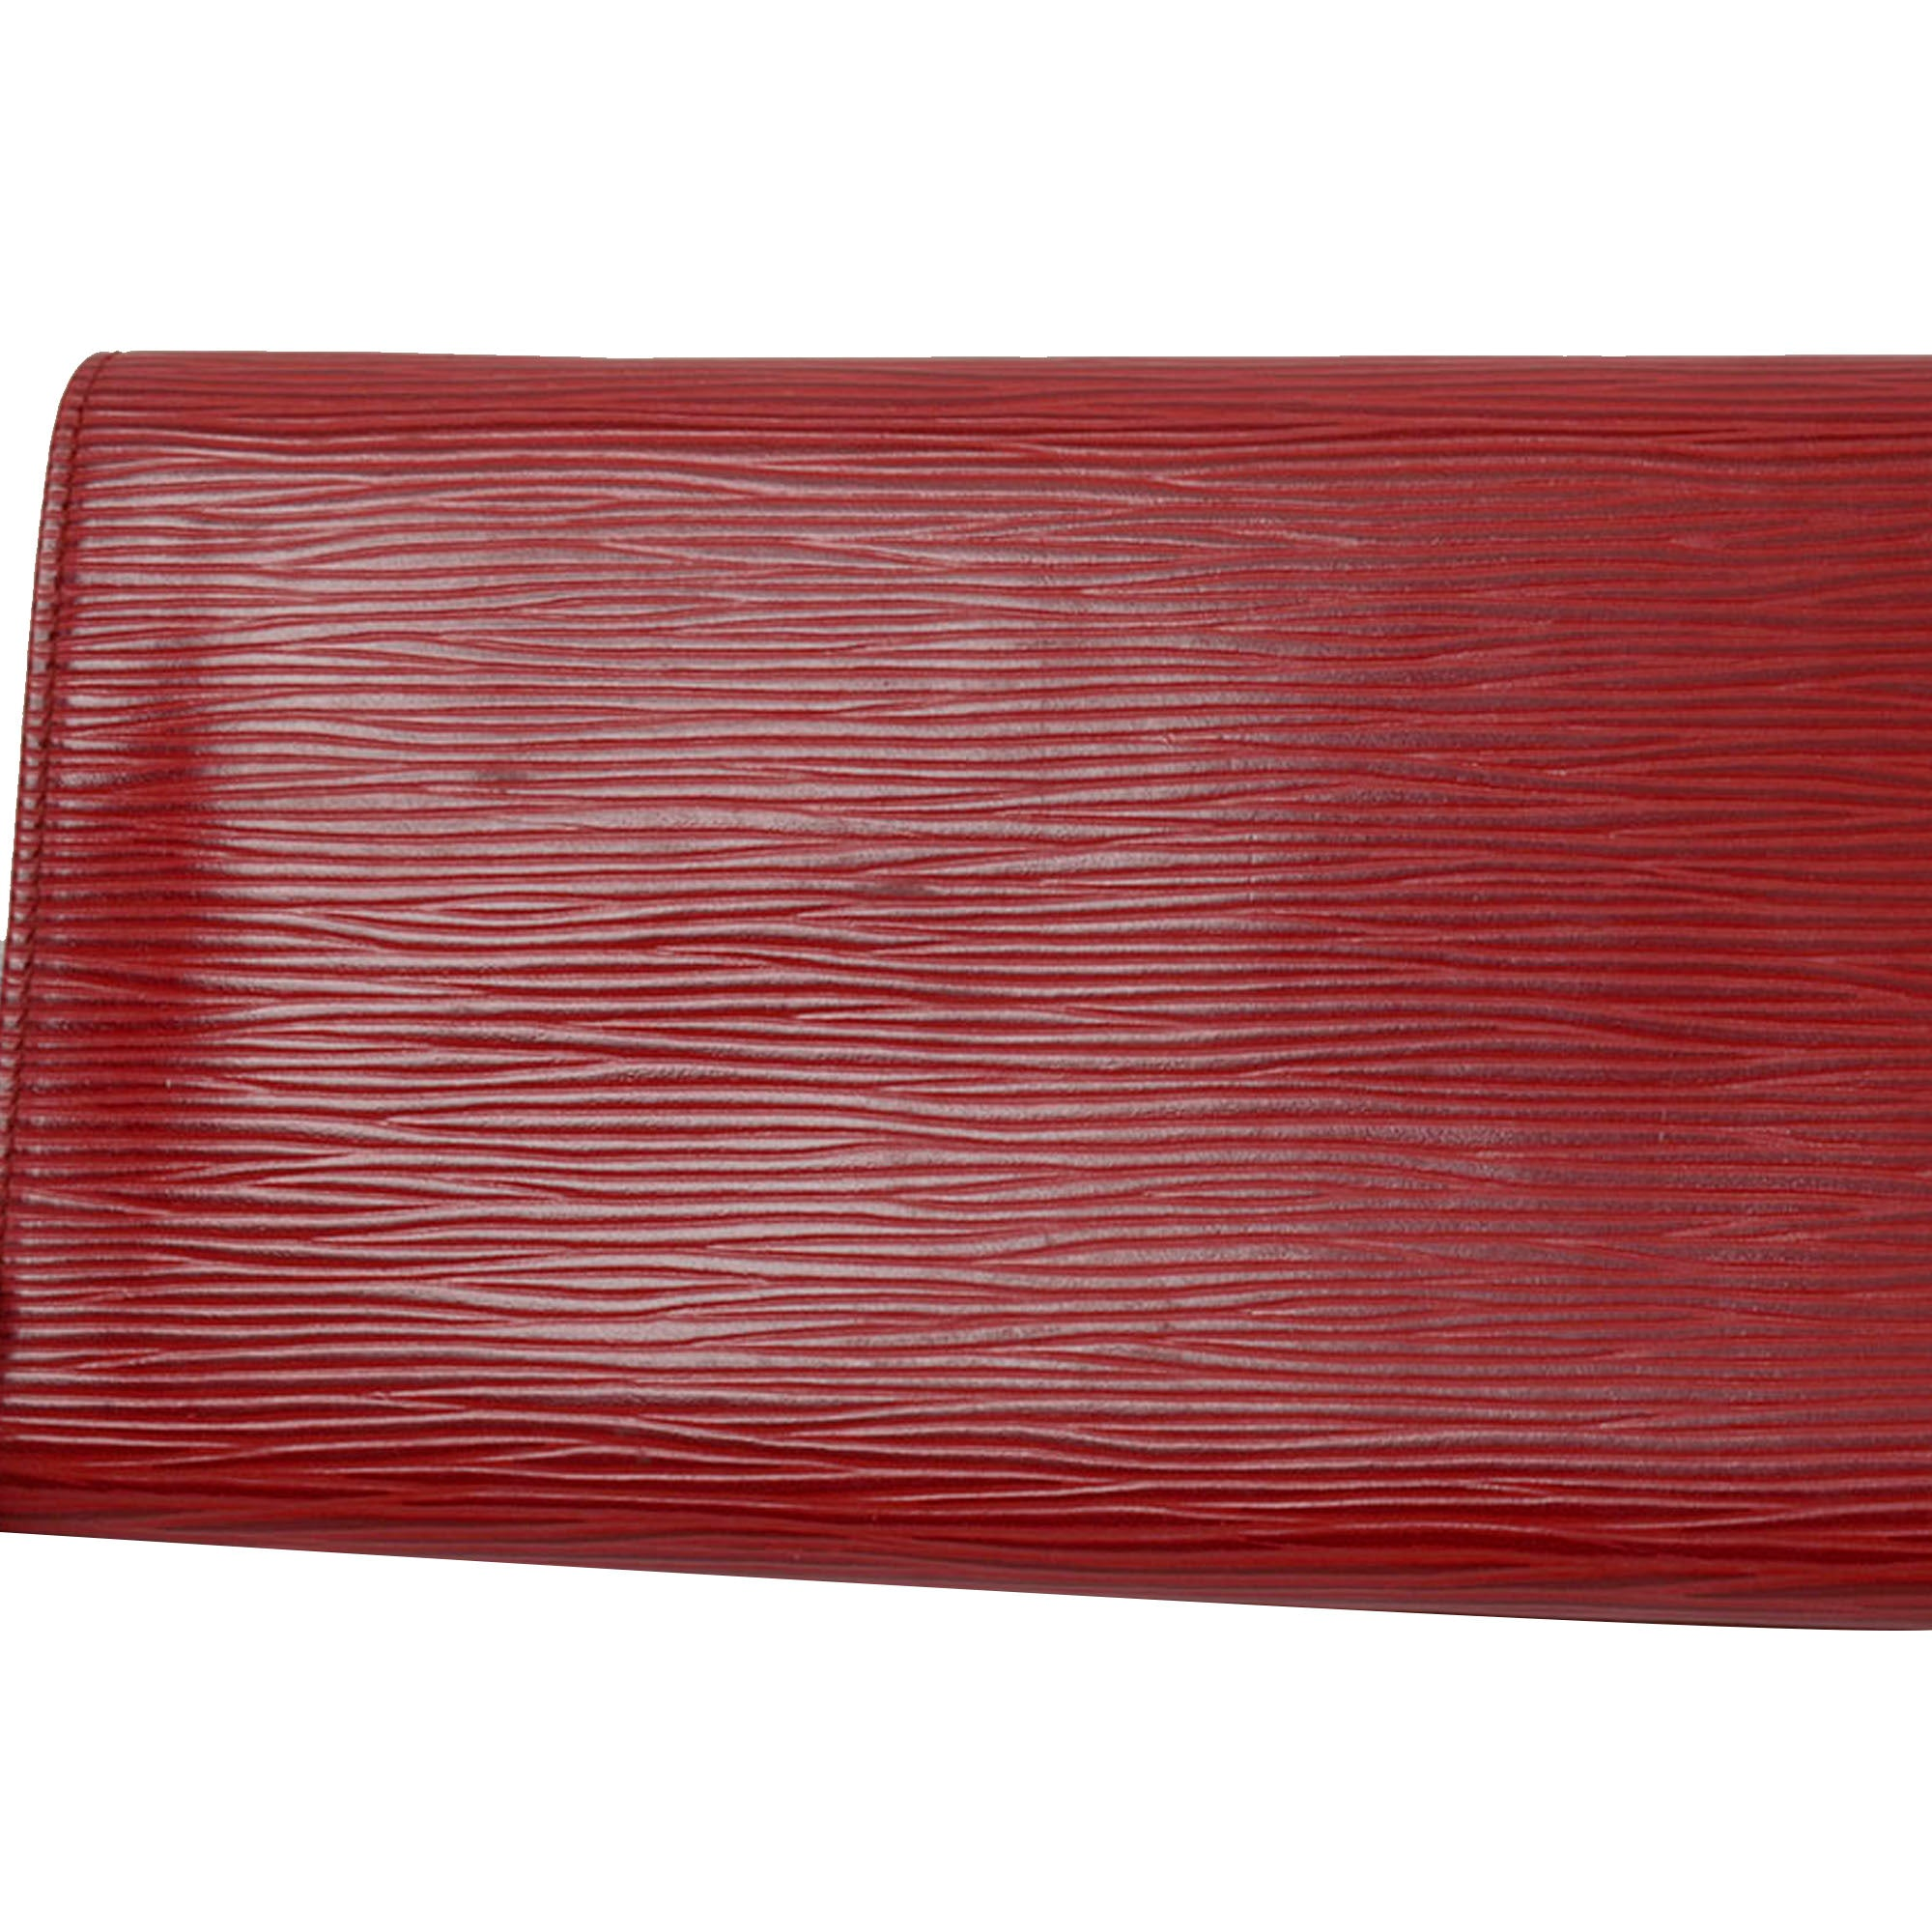 Louis Vuitton Red Epi Rouleau Bijoux Jewelry Roll